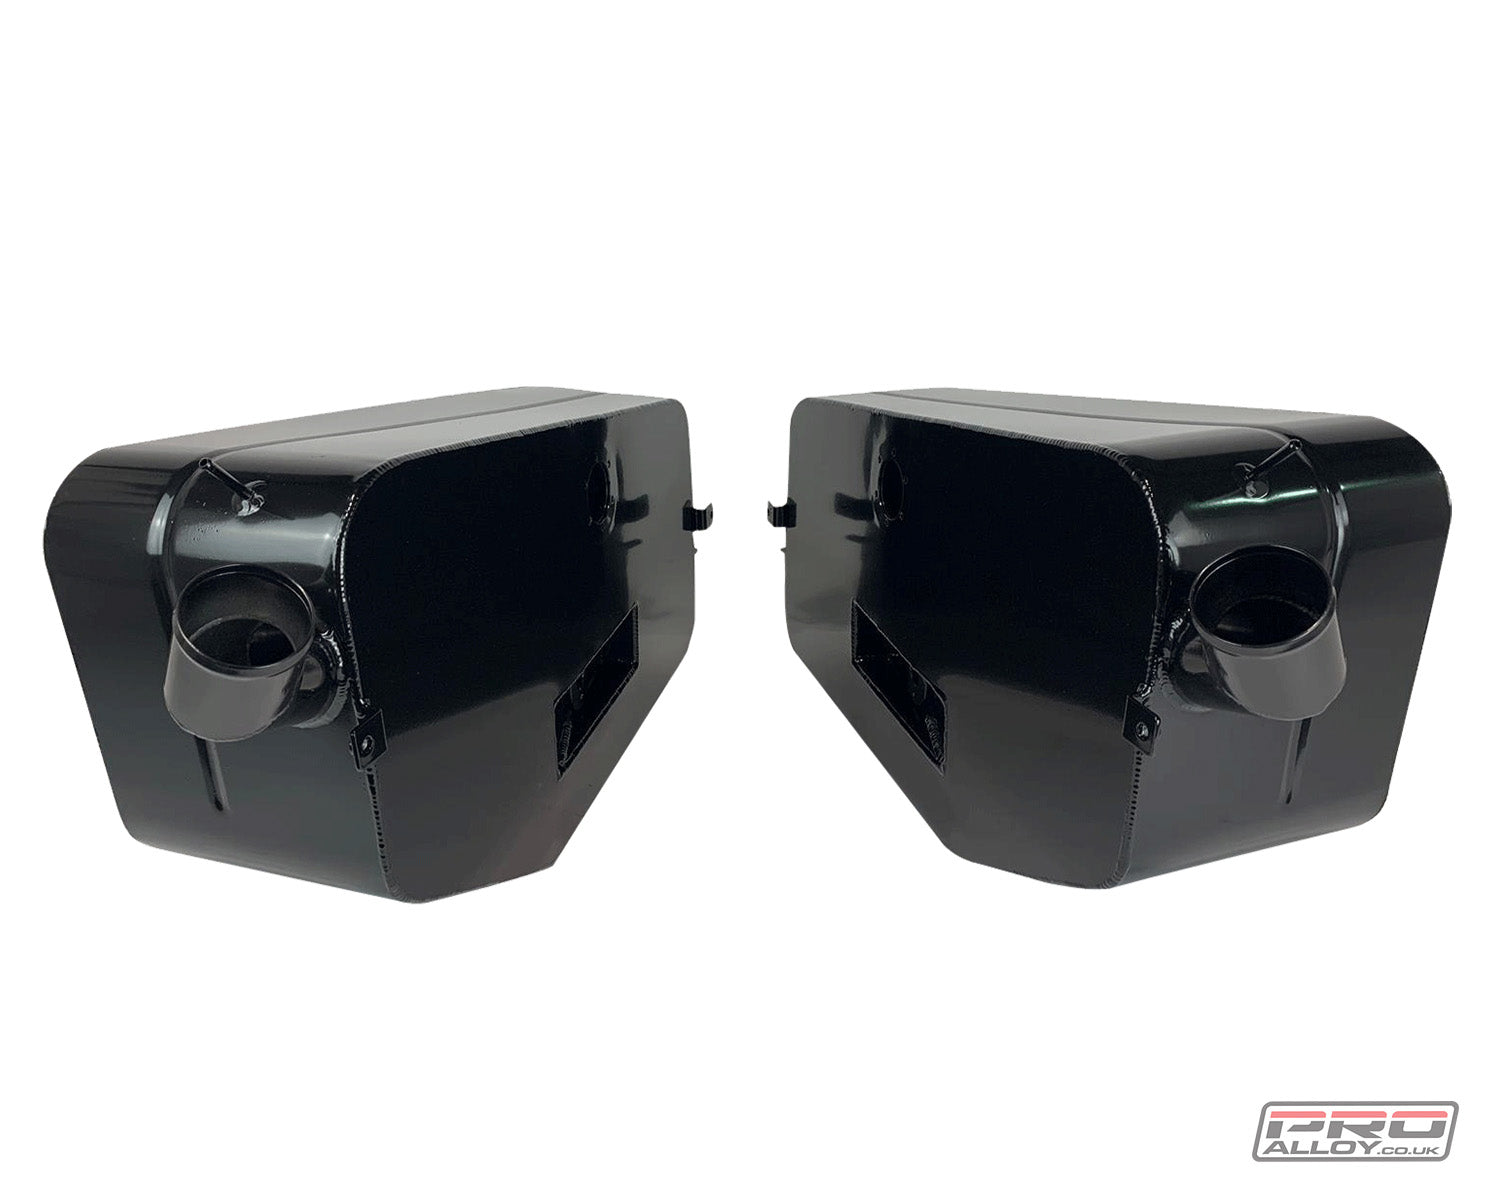 Aston Martin DB5 DB6 Fuel Tank Pair